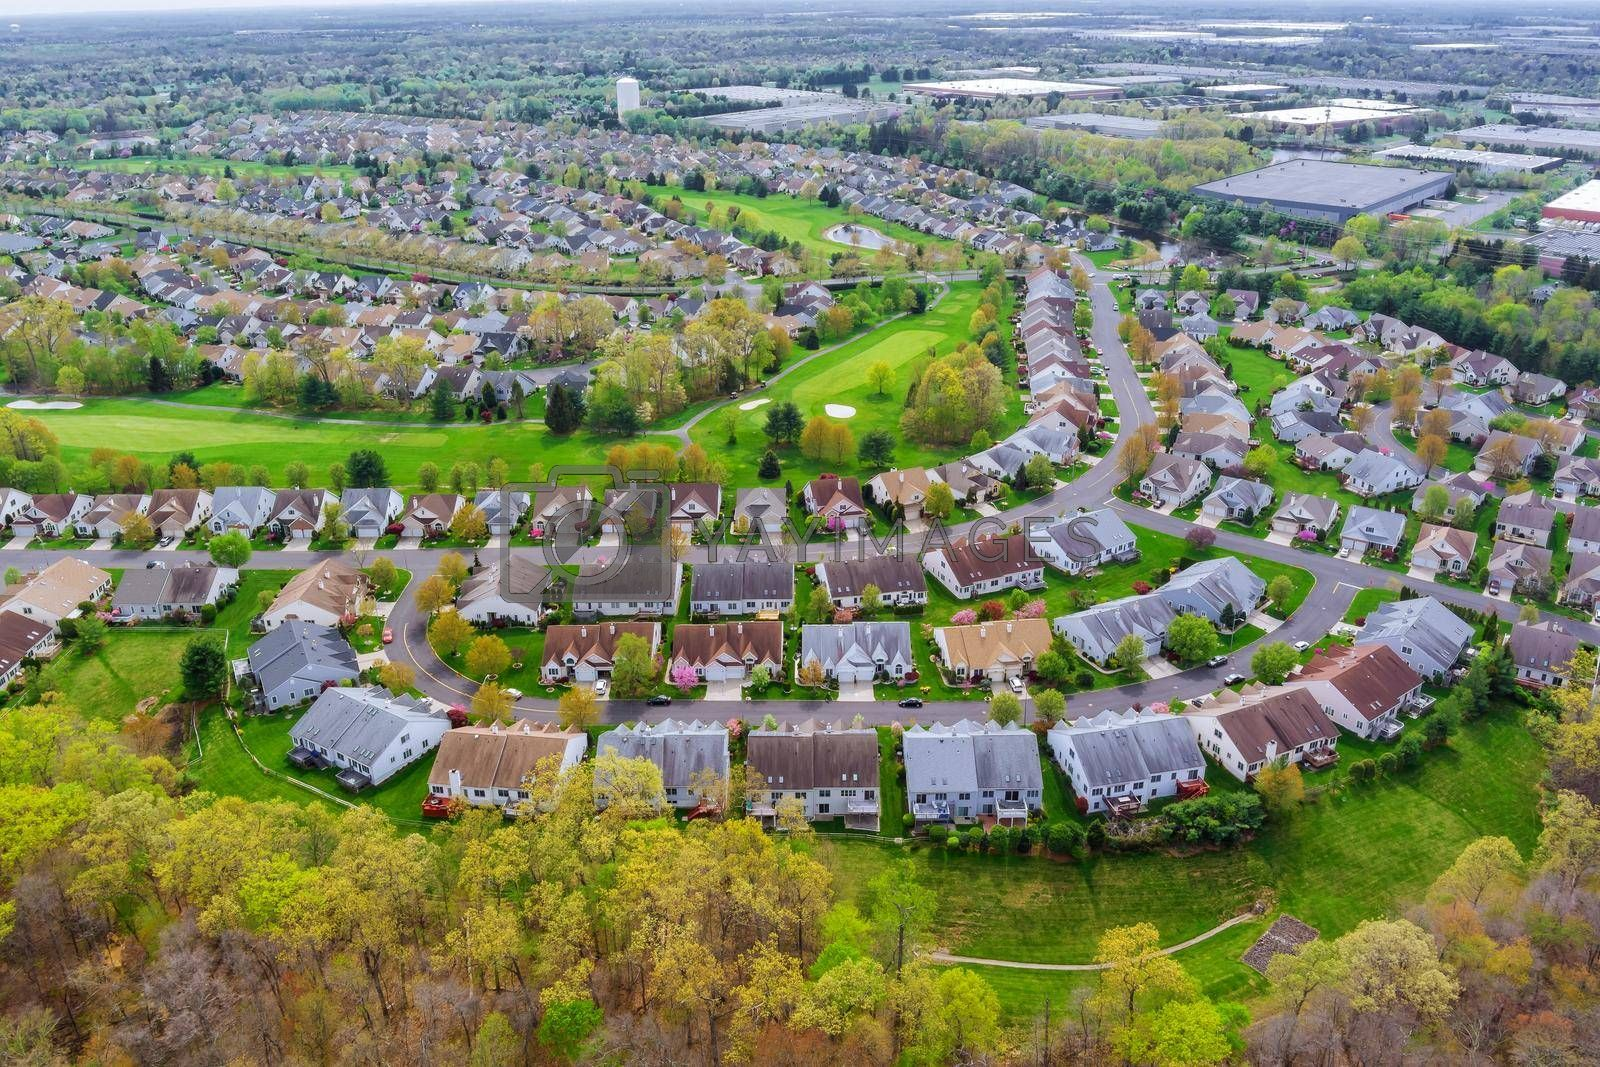 Royalty free image of Panorama view of american small town residential houses neighborhood suburban complex by ungvar